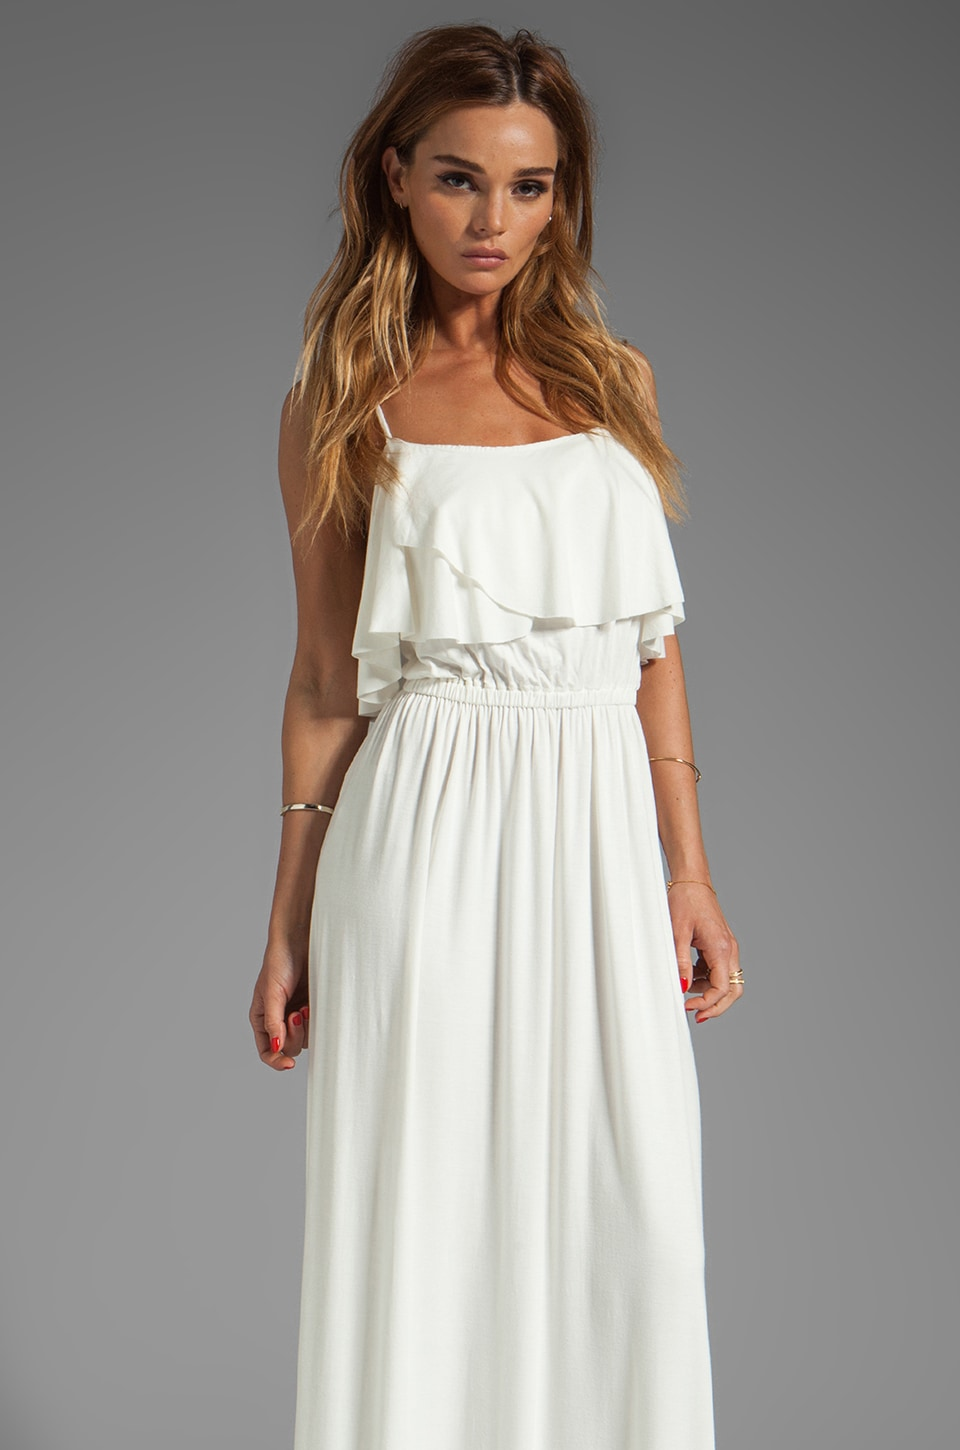 Rachel Pally Cloris Maxi Dress in White